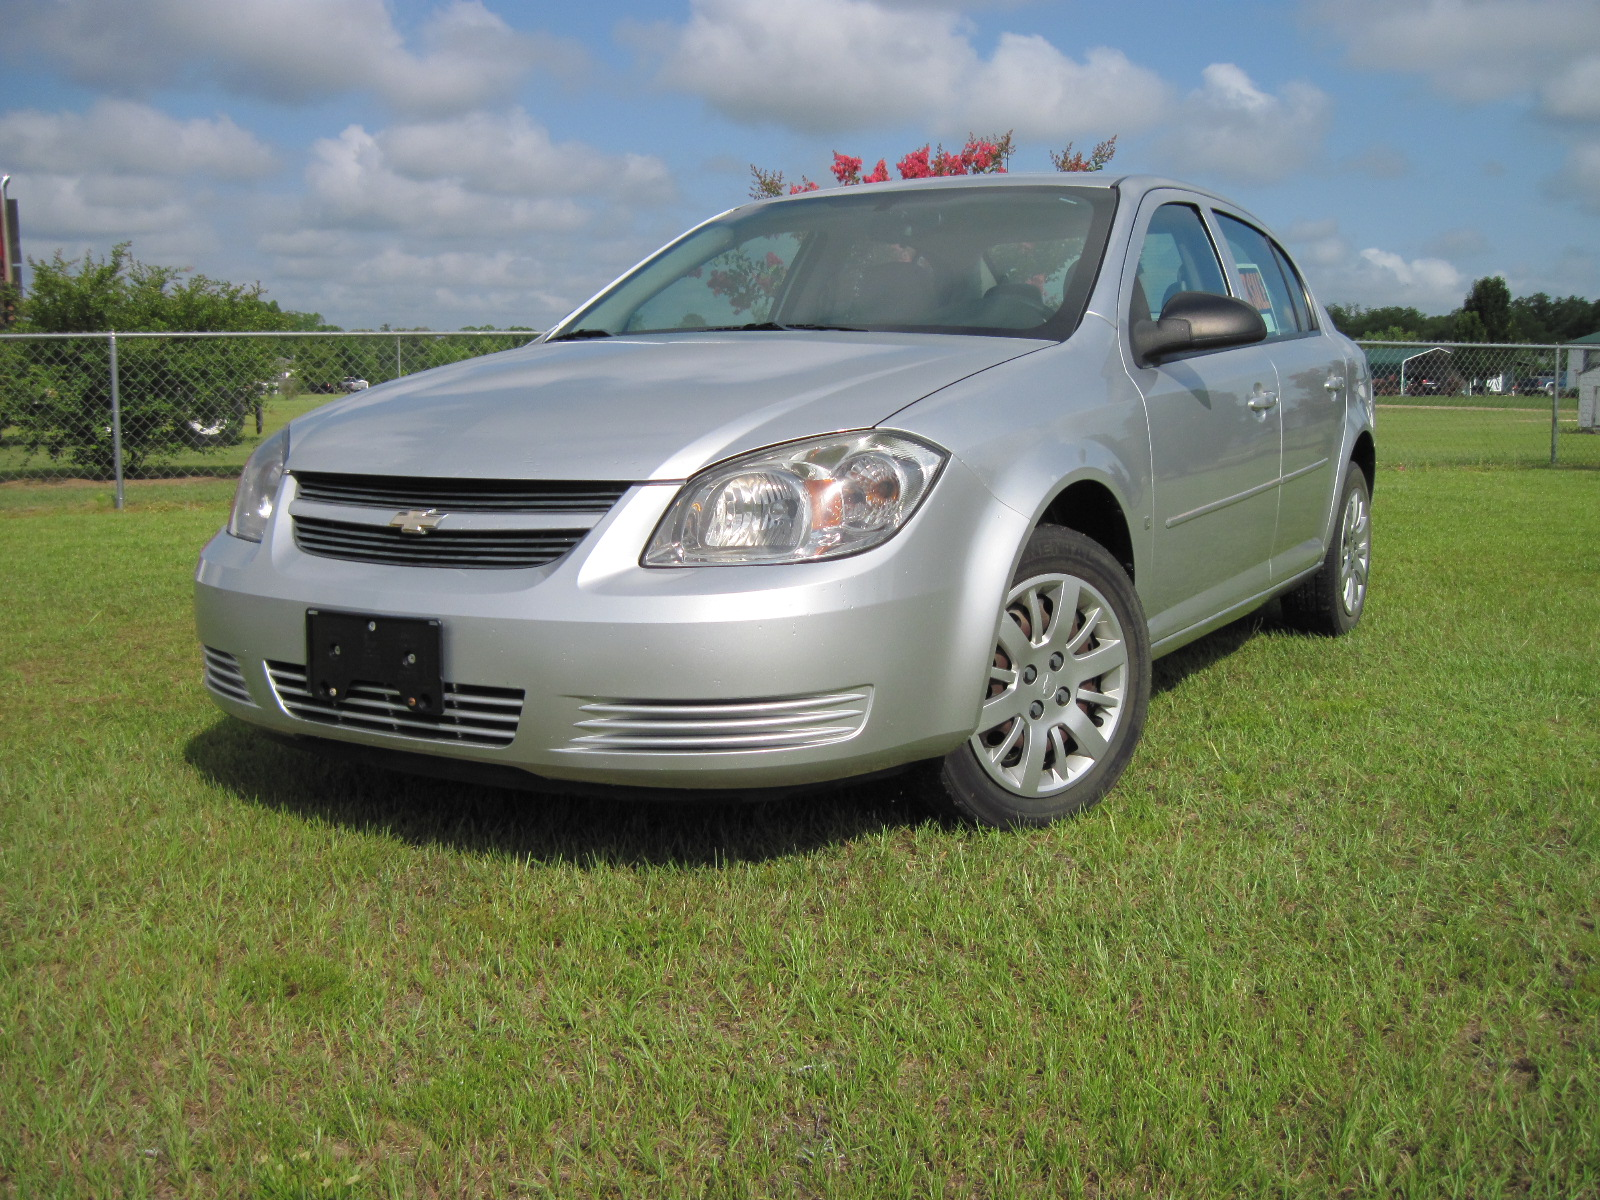 picture of 2009 chevrolet cobalt lt1 exterior. Cars Review. Best American Auto & Cars Review